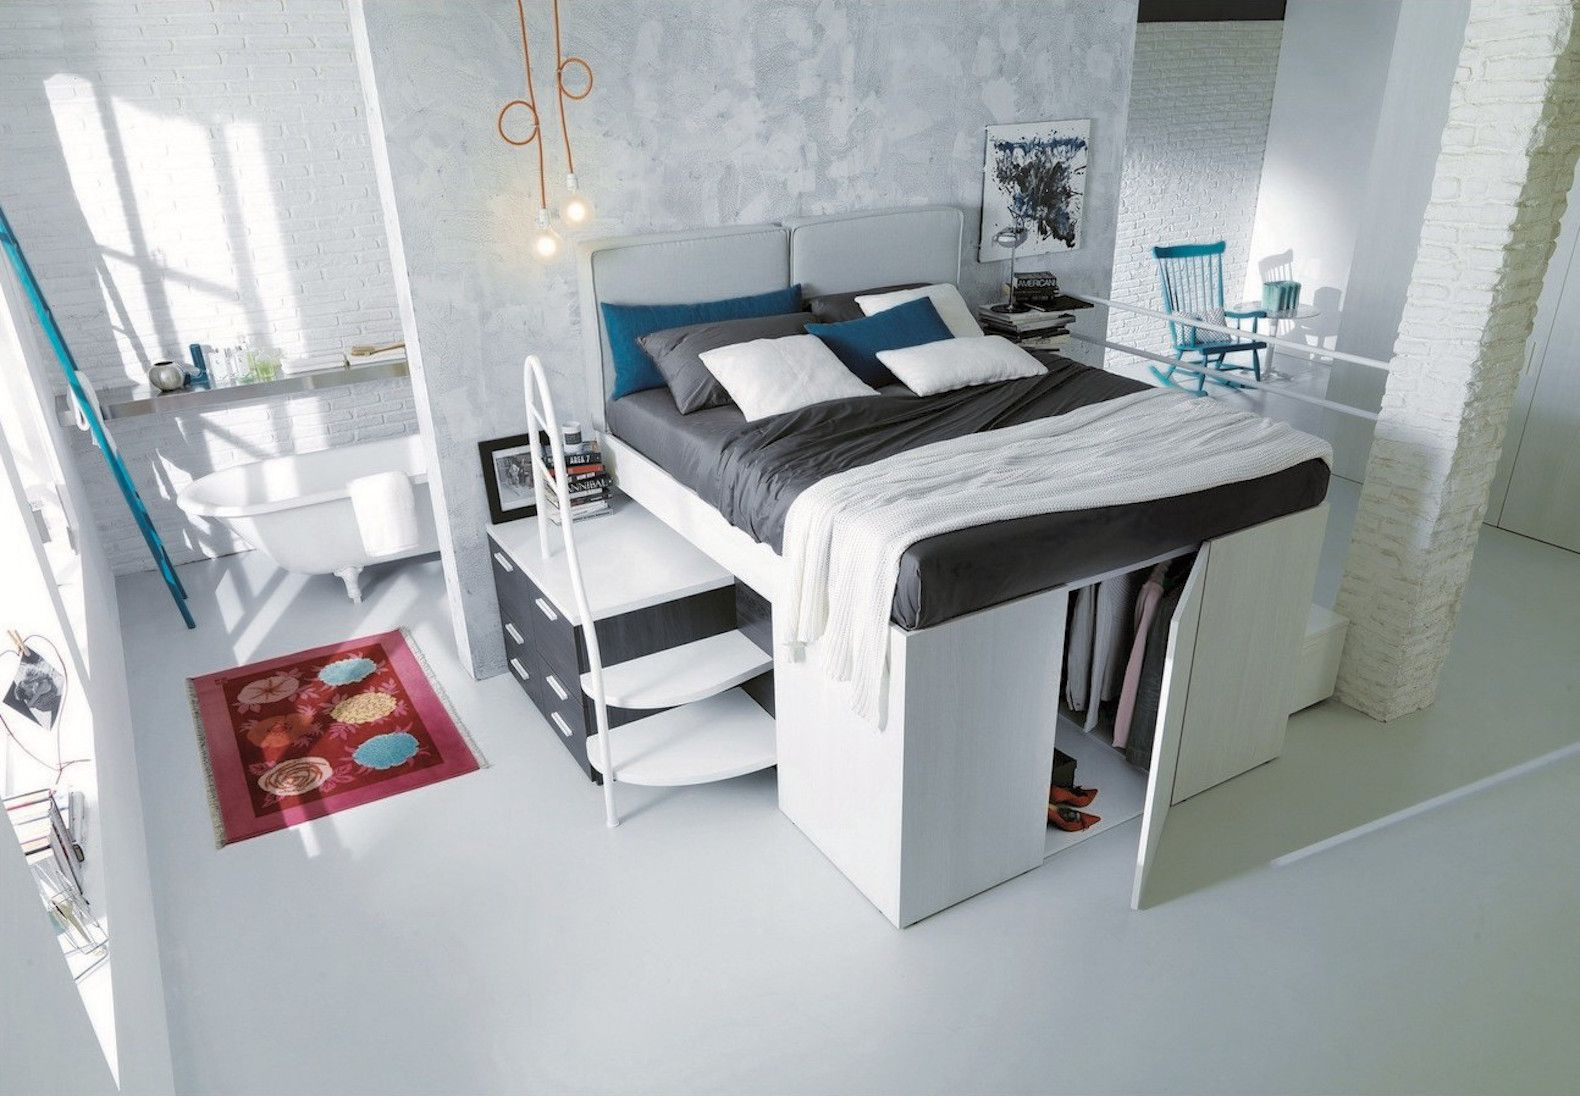 Smart Space Saving Bed Hides A Walk In Closet Underneath Space Saving Furniture Space Saving Beds Space Saving Bedroom